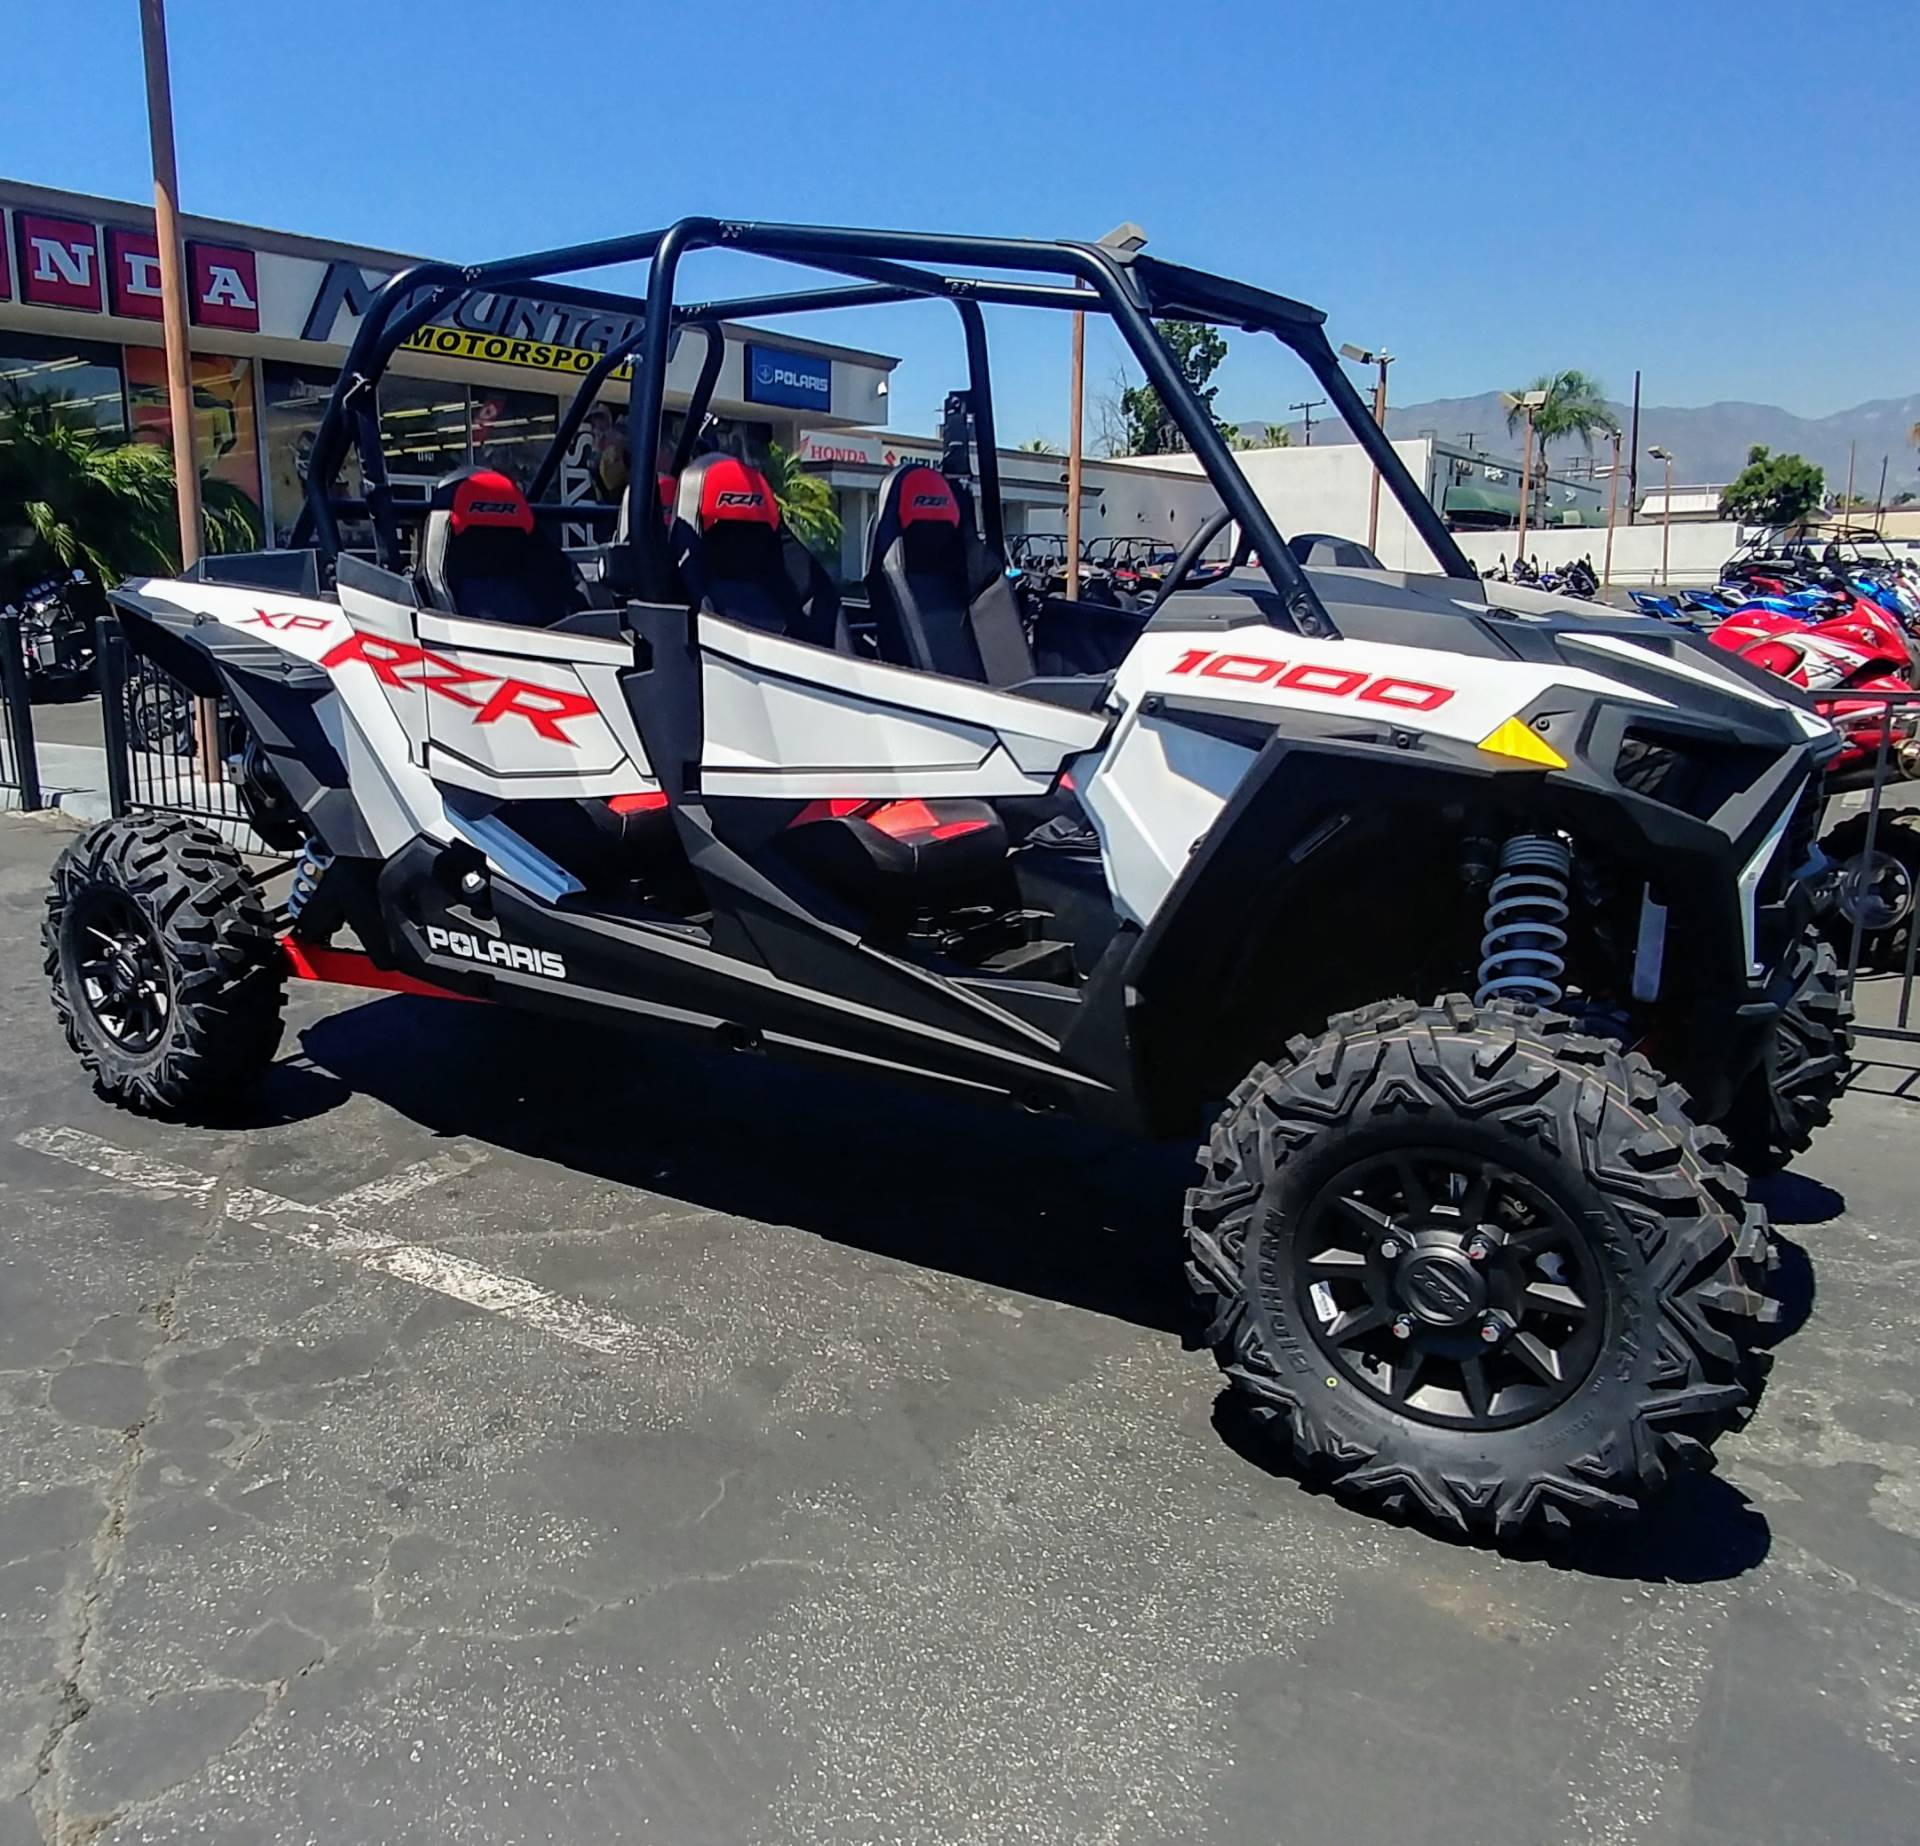 2020 Polaris RZR XP 4 1000 in Ontario, California - Photo 3